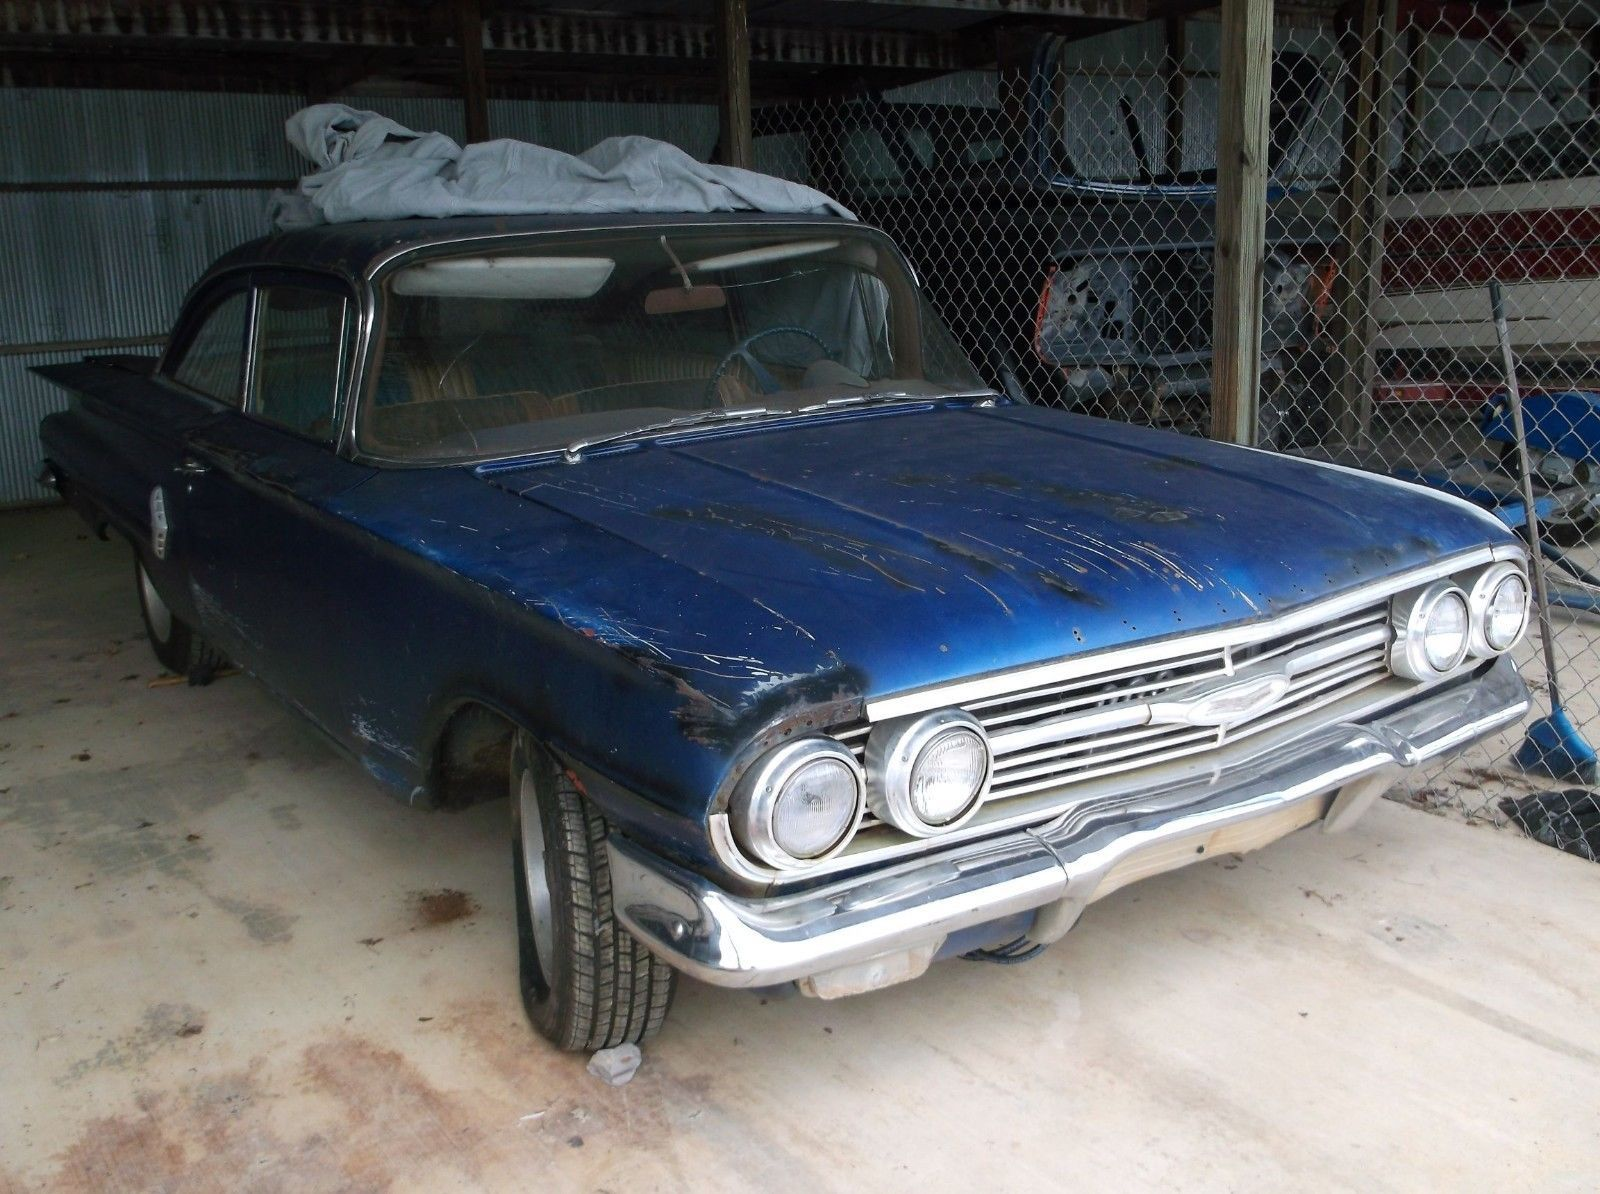 All Chevy 1960 chevrolet biscayne 2 door : Awesome Amazing 1960 Chevrolet BISCAYNE 1960 CHEROLET BISCAYNE 2 ...